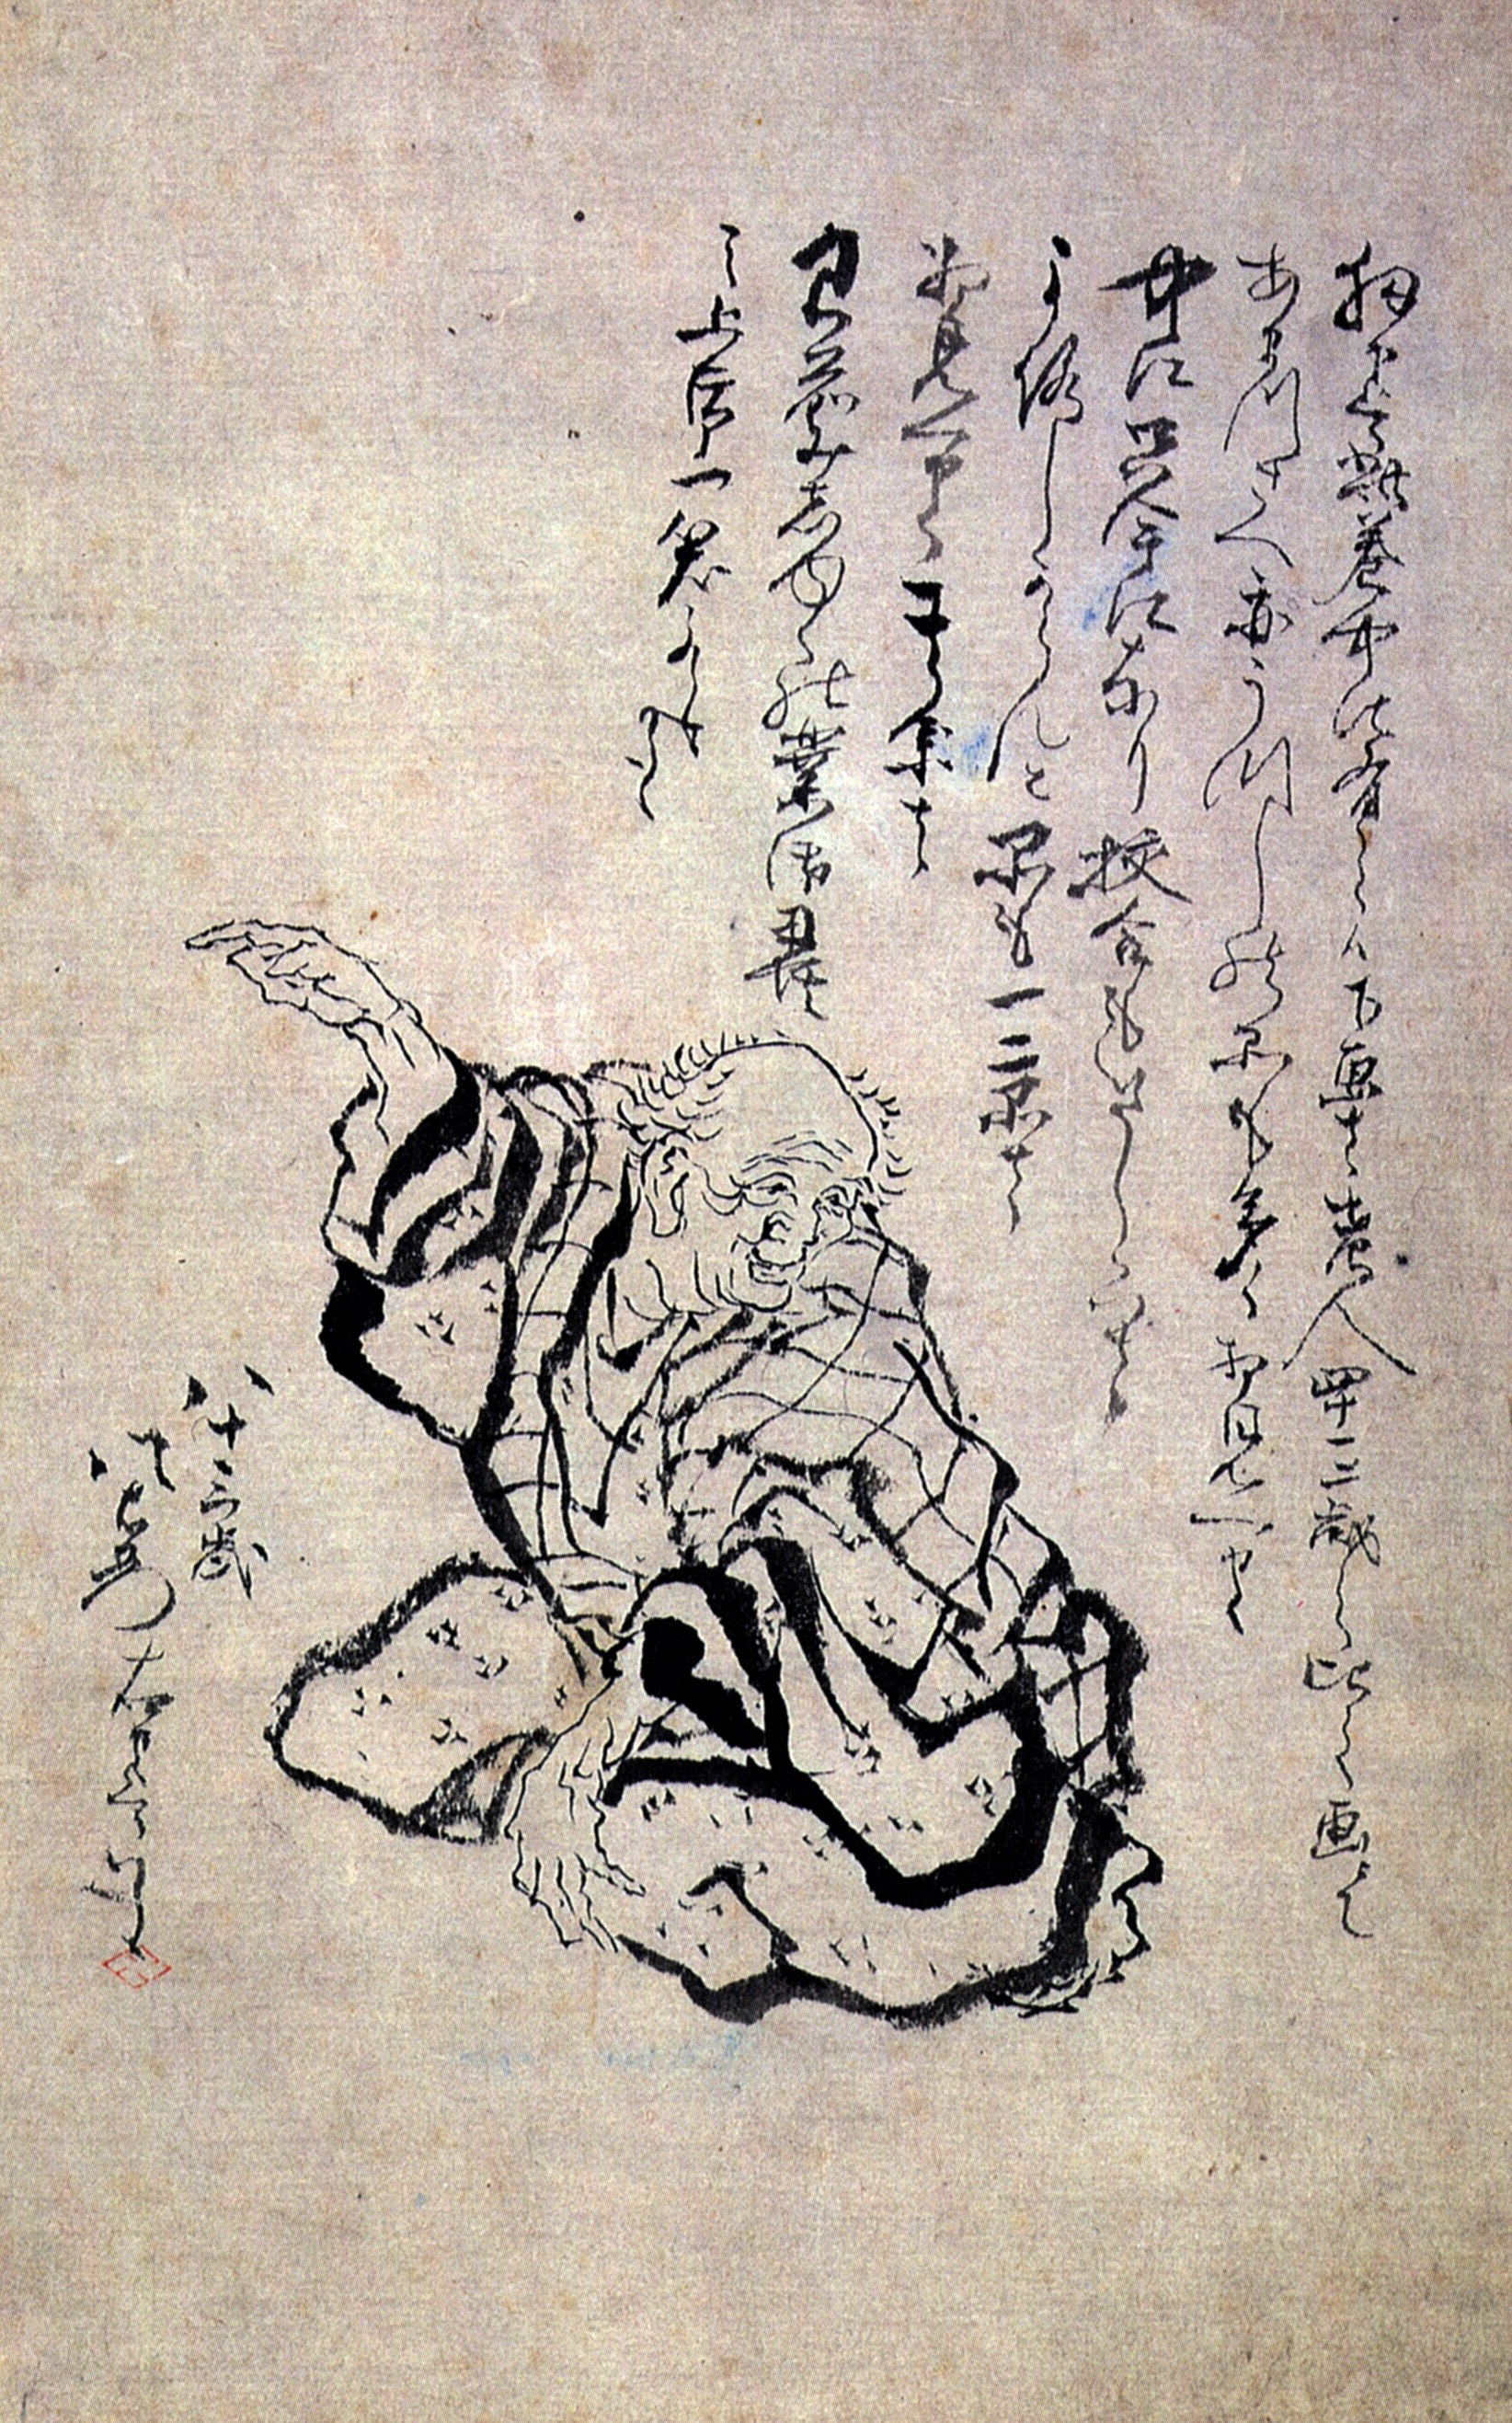 Hokusai 1760 1849%2c katsushika%2c japan selfportrait at the age of eighty three